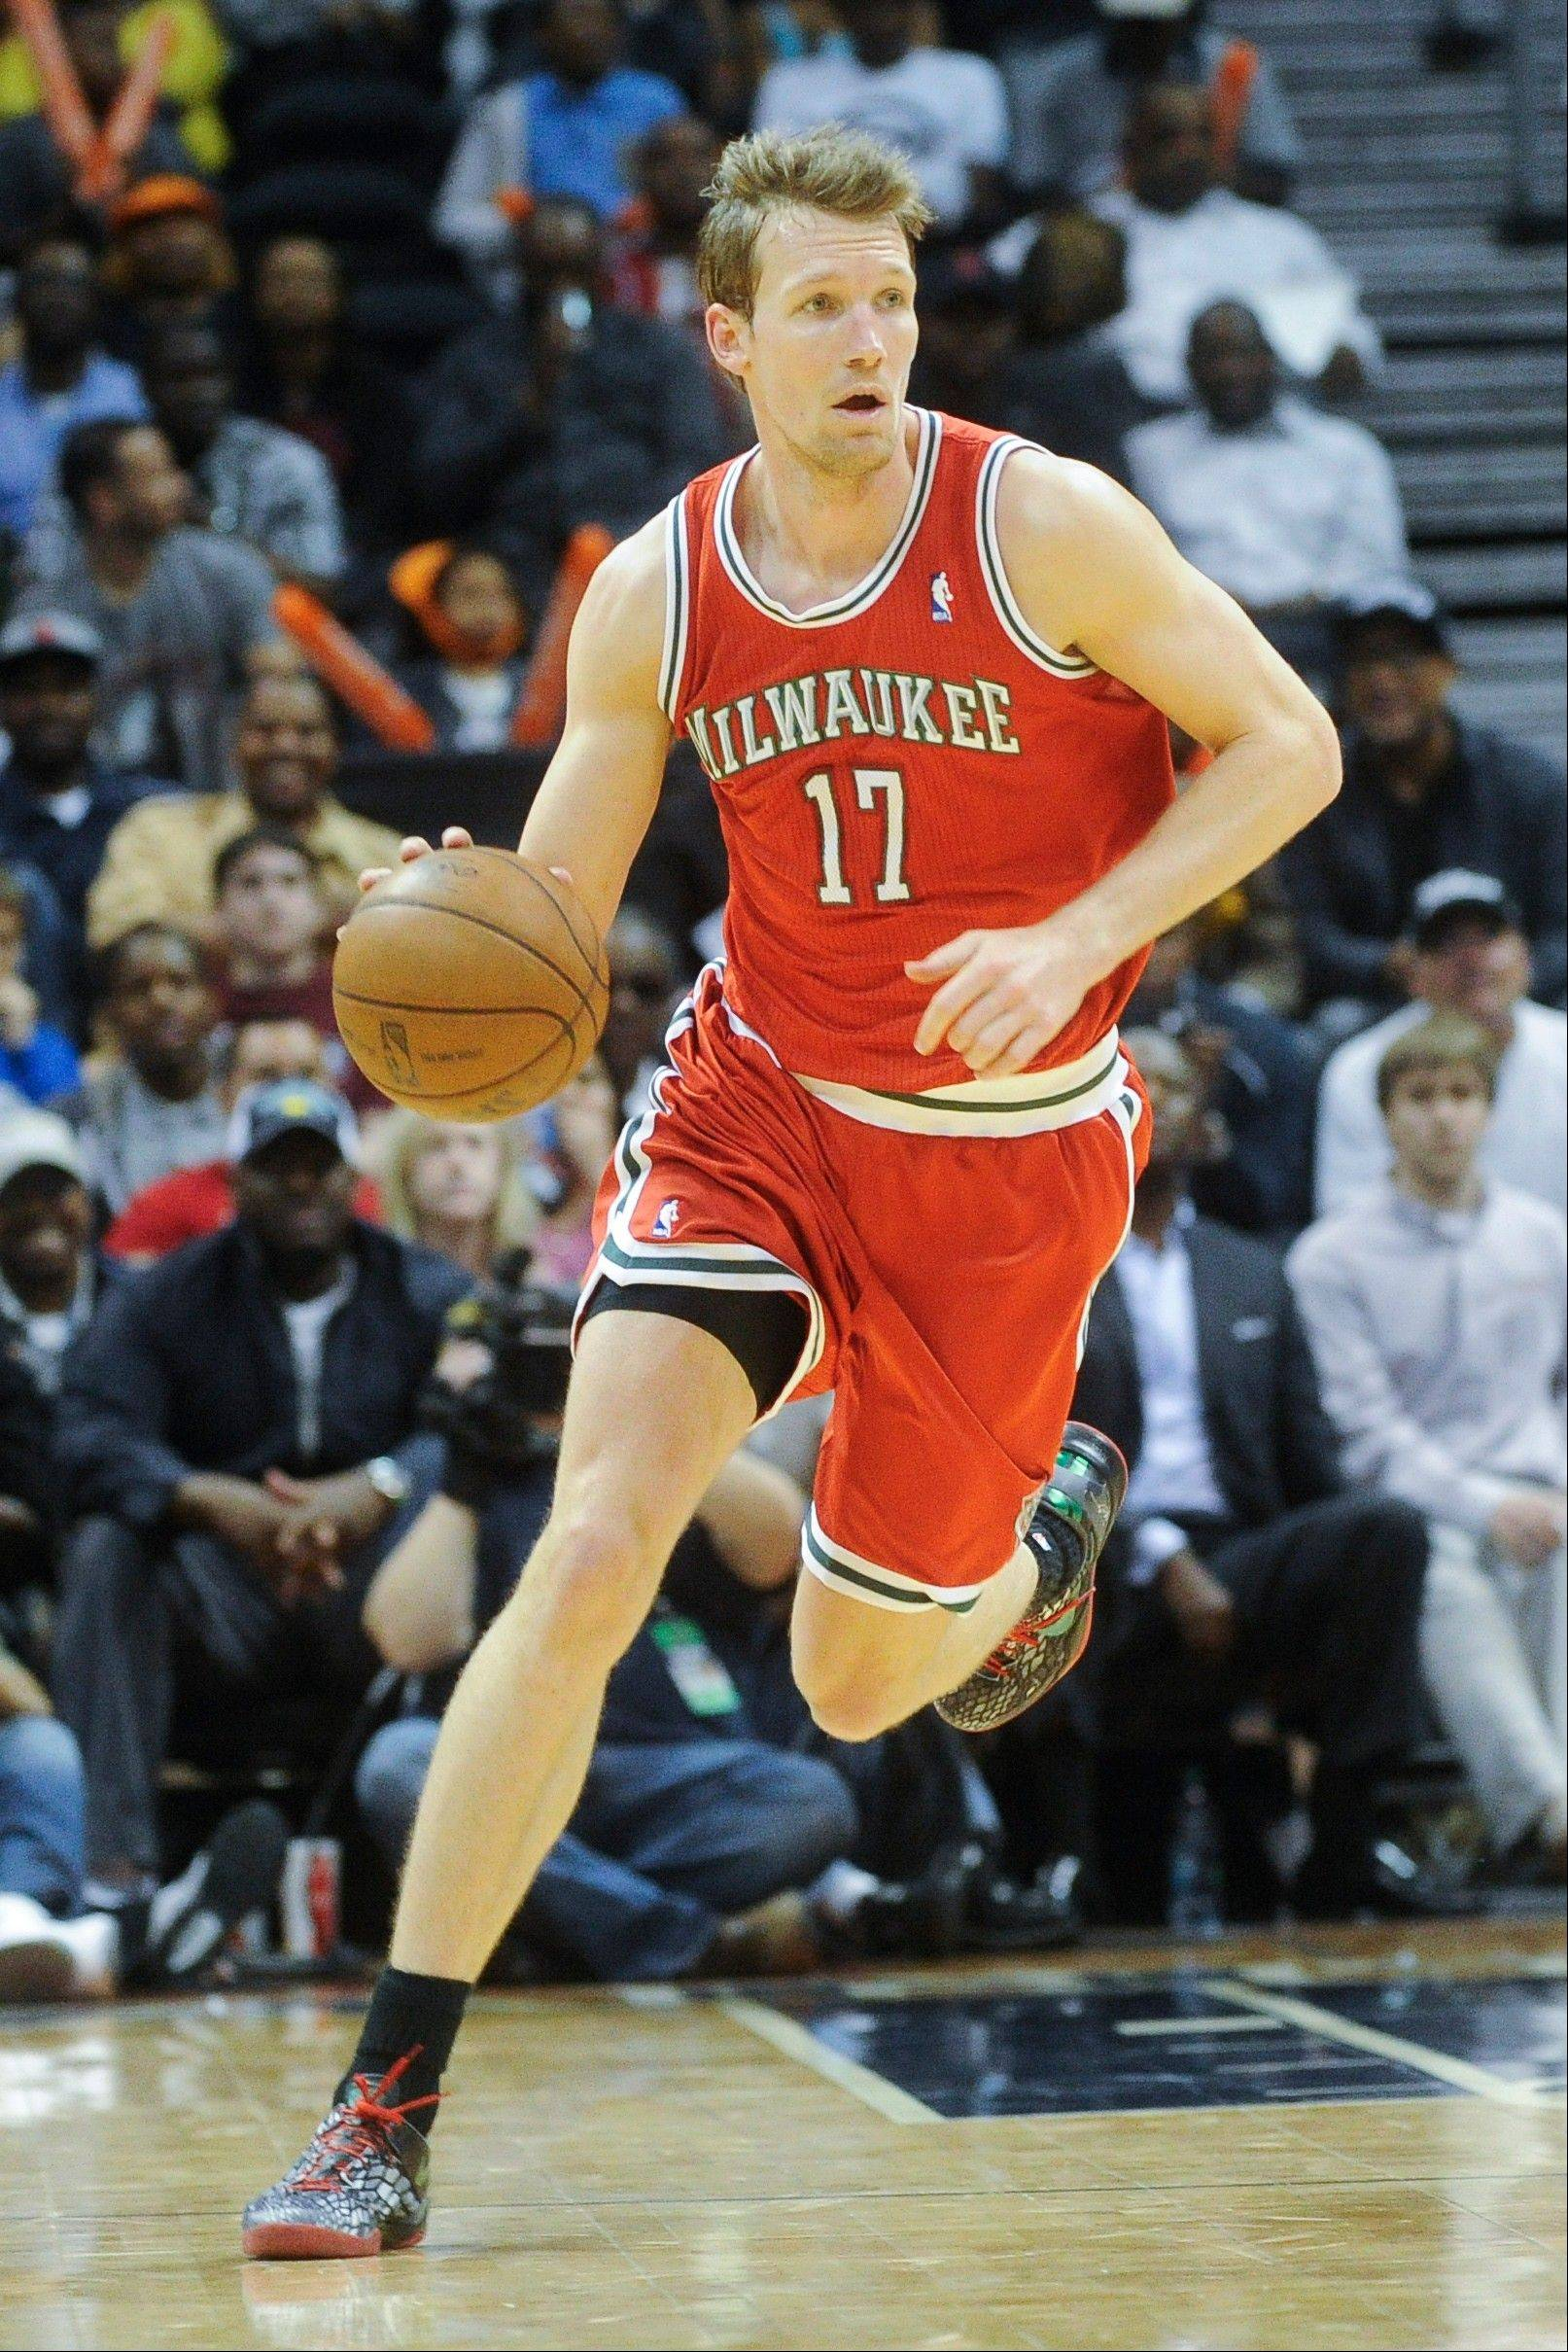 New Bulls free-agent addition Mike Dunleavy averaged 12.3 points in the Milwaukee Bucks' first-round playoff loss to the Miami Heat this season.